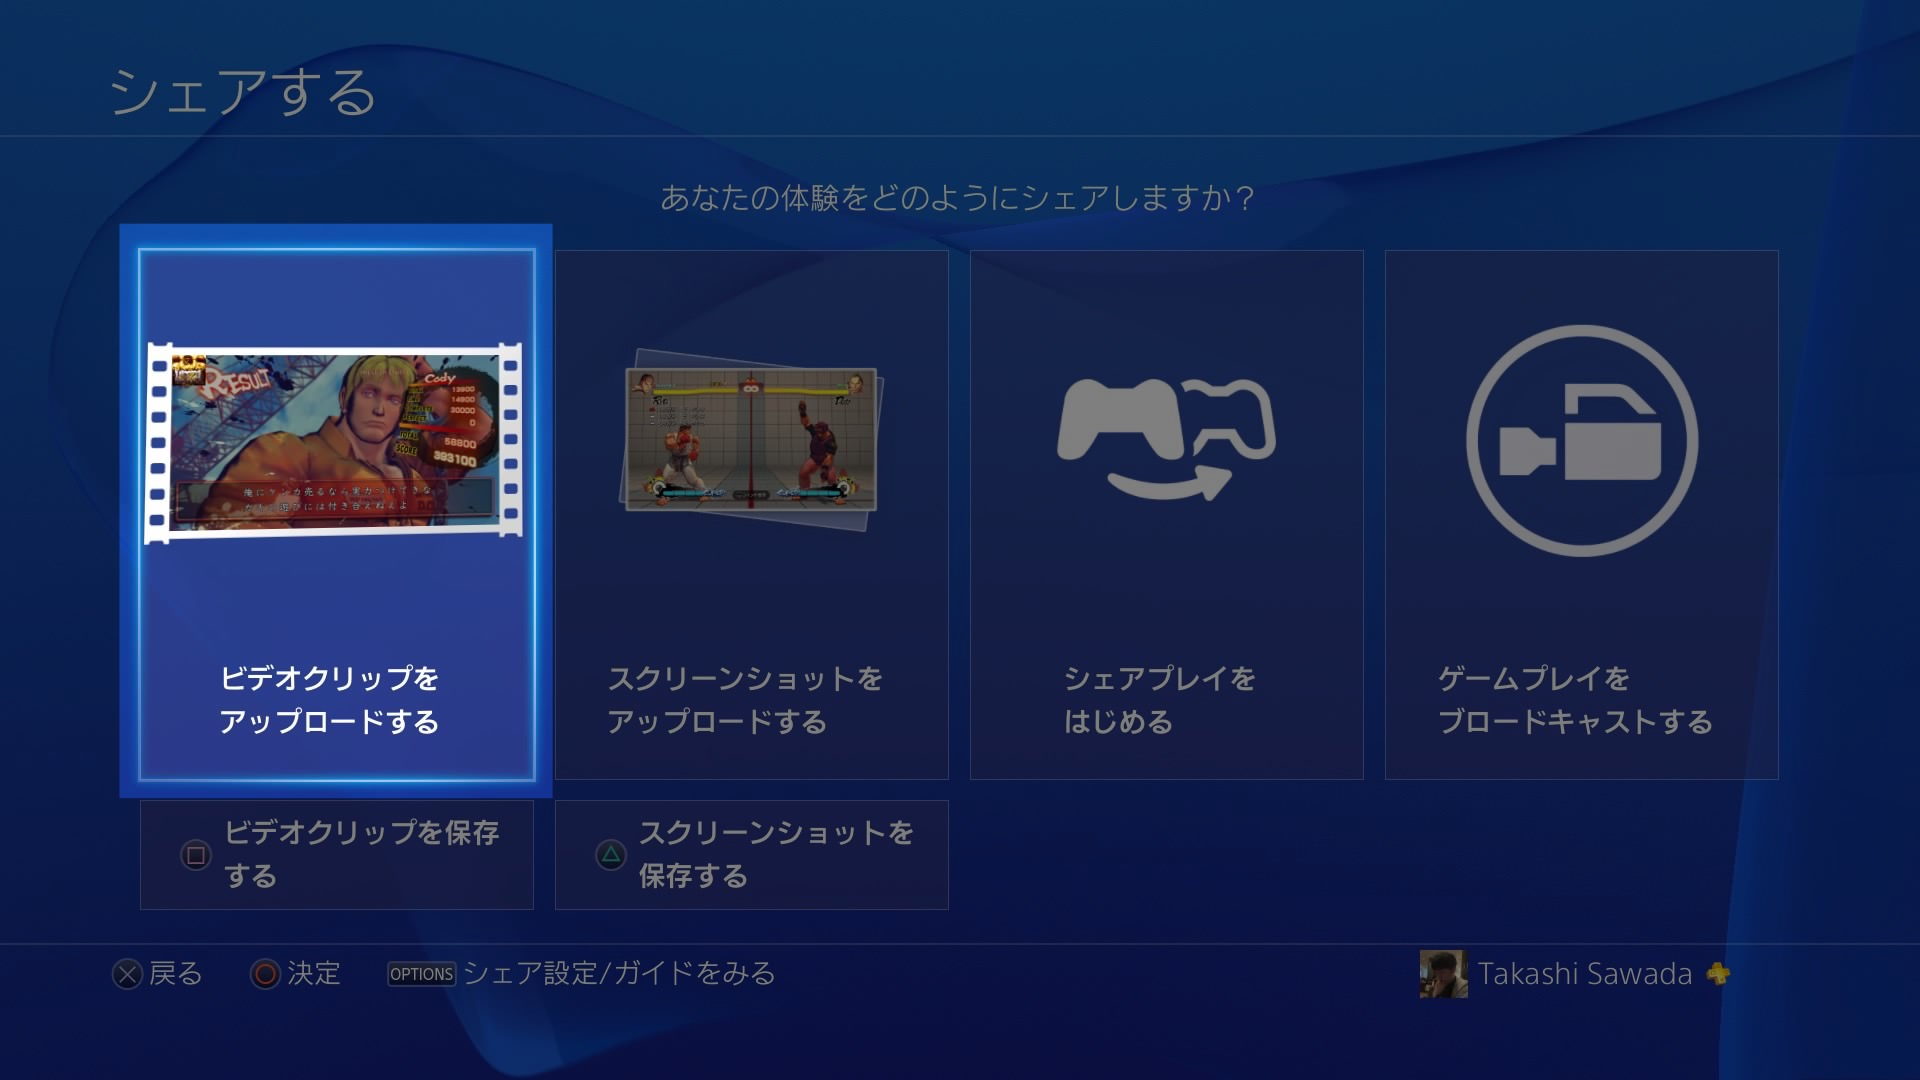 How to upload video for twitter from playstation 4 2